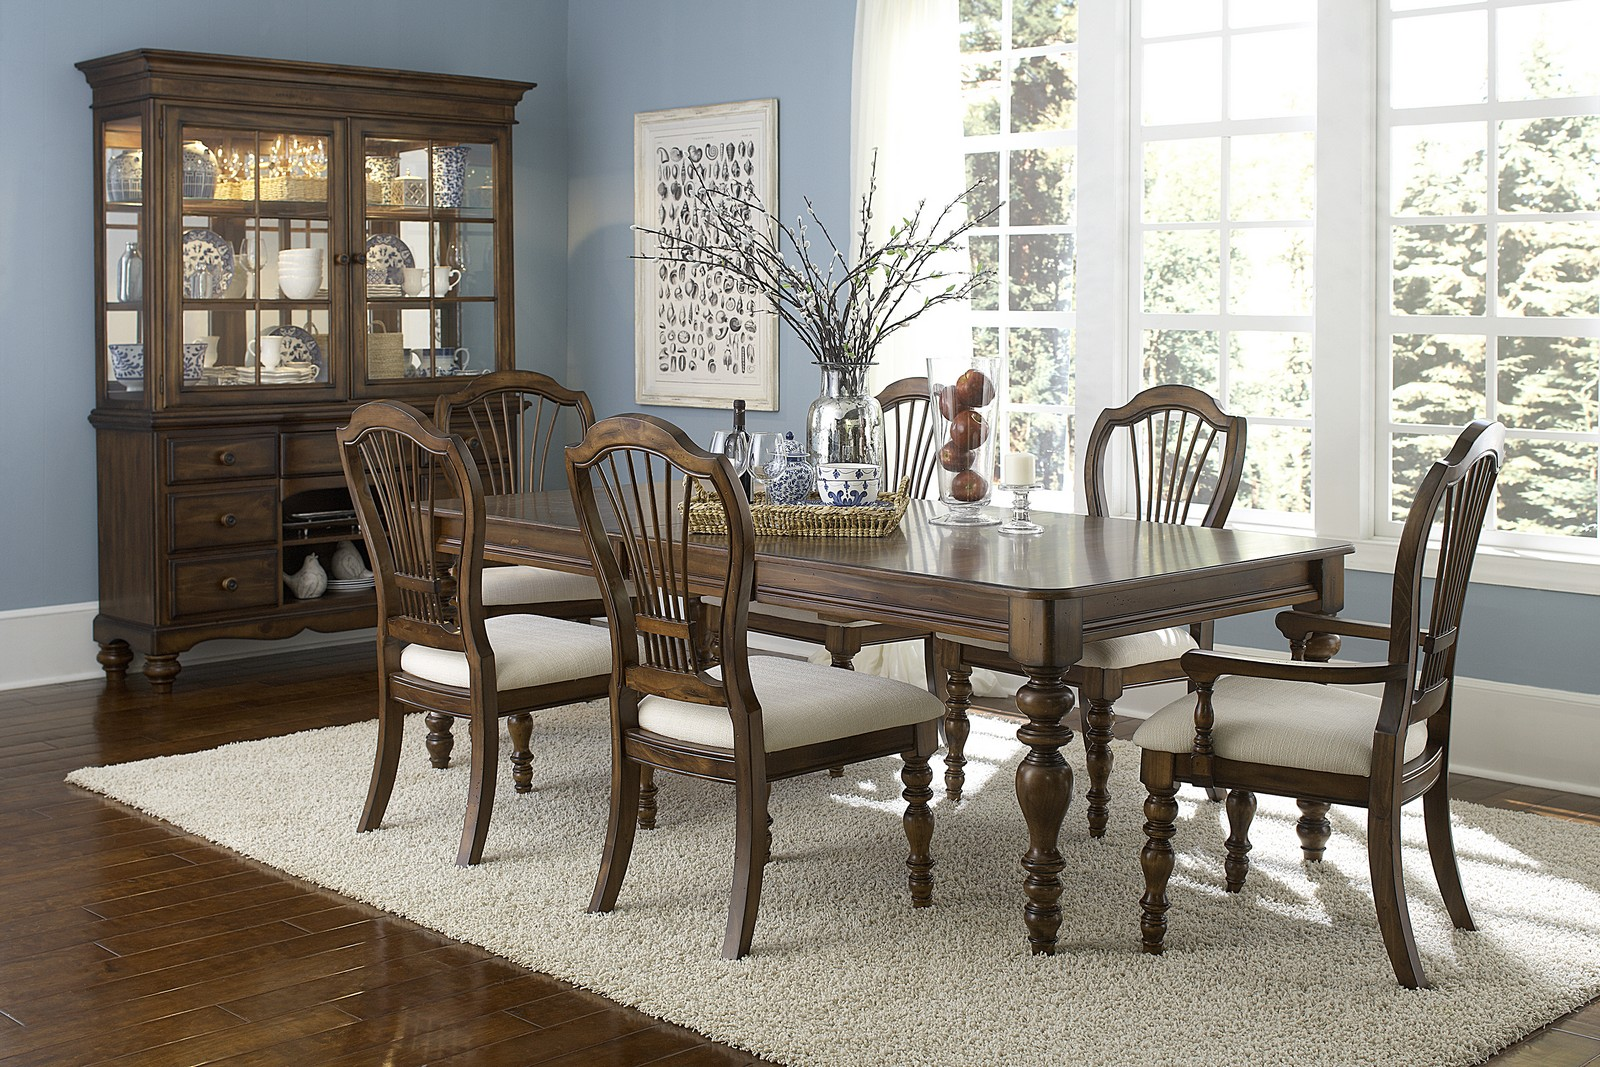 https://www.hillsdalefurnituremart.com/images/HD-4860DTBRCW7.jpg